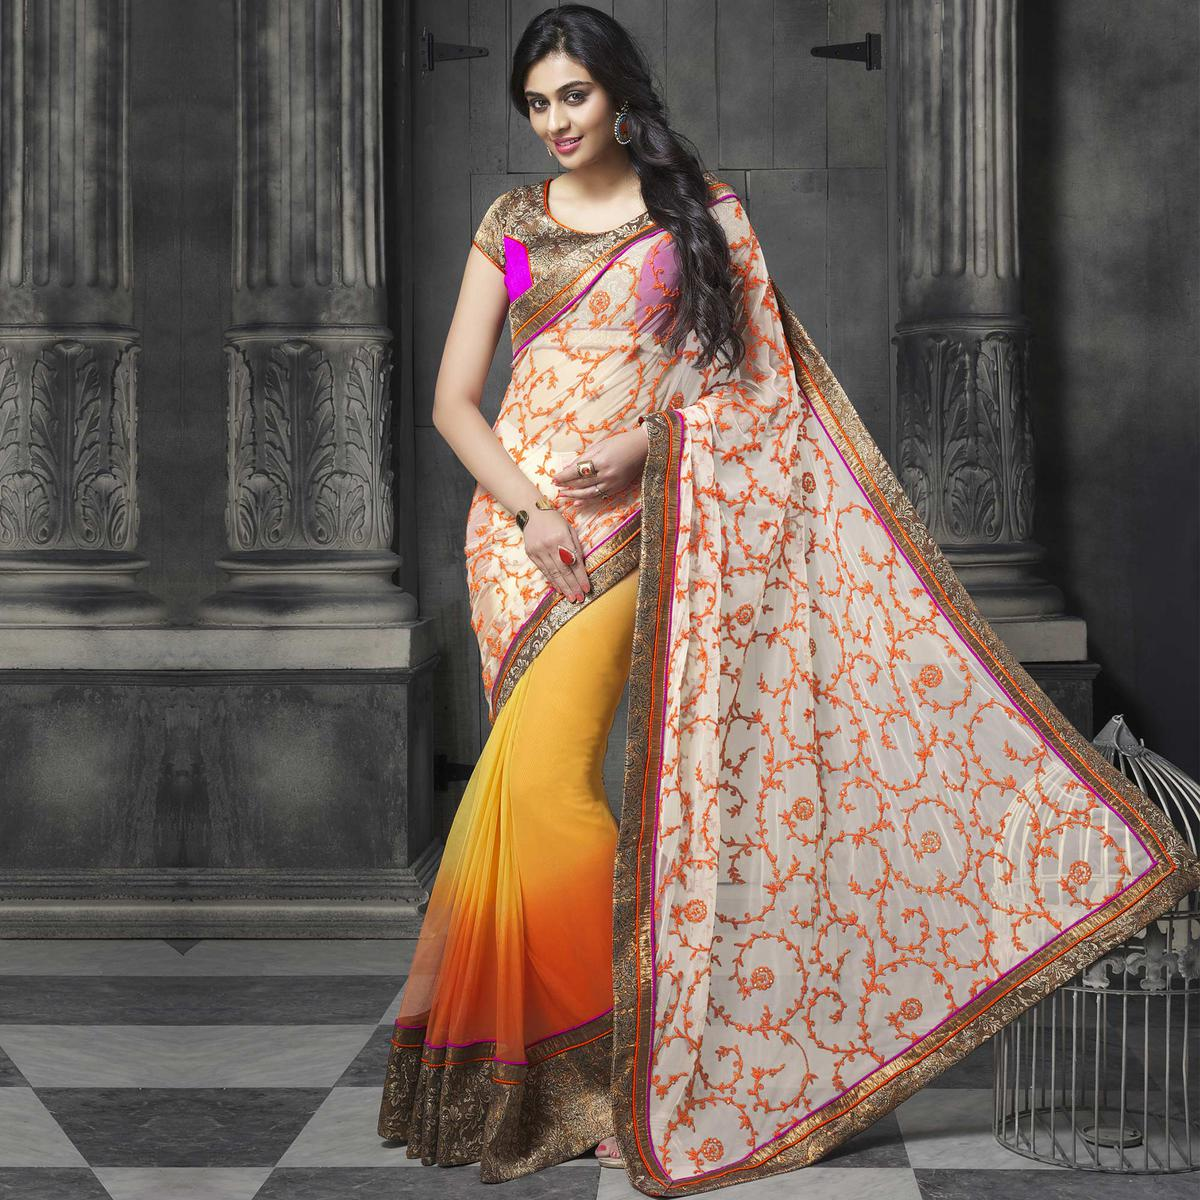 Adorable Shaded Tri Color Net Half Saree